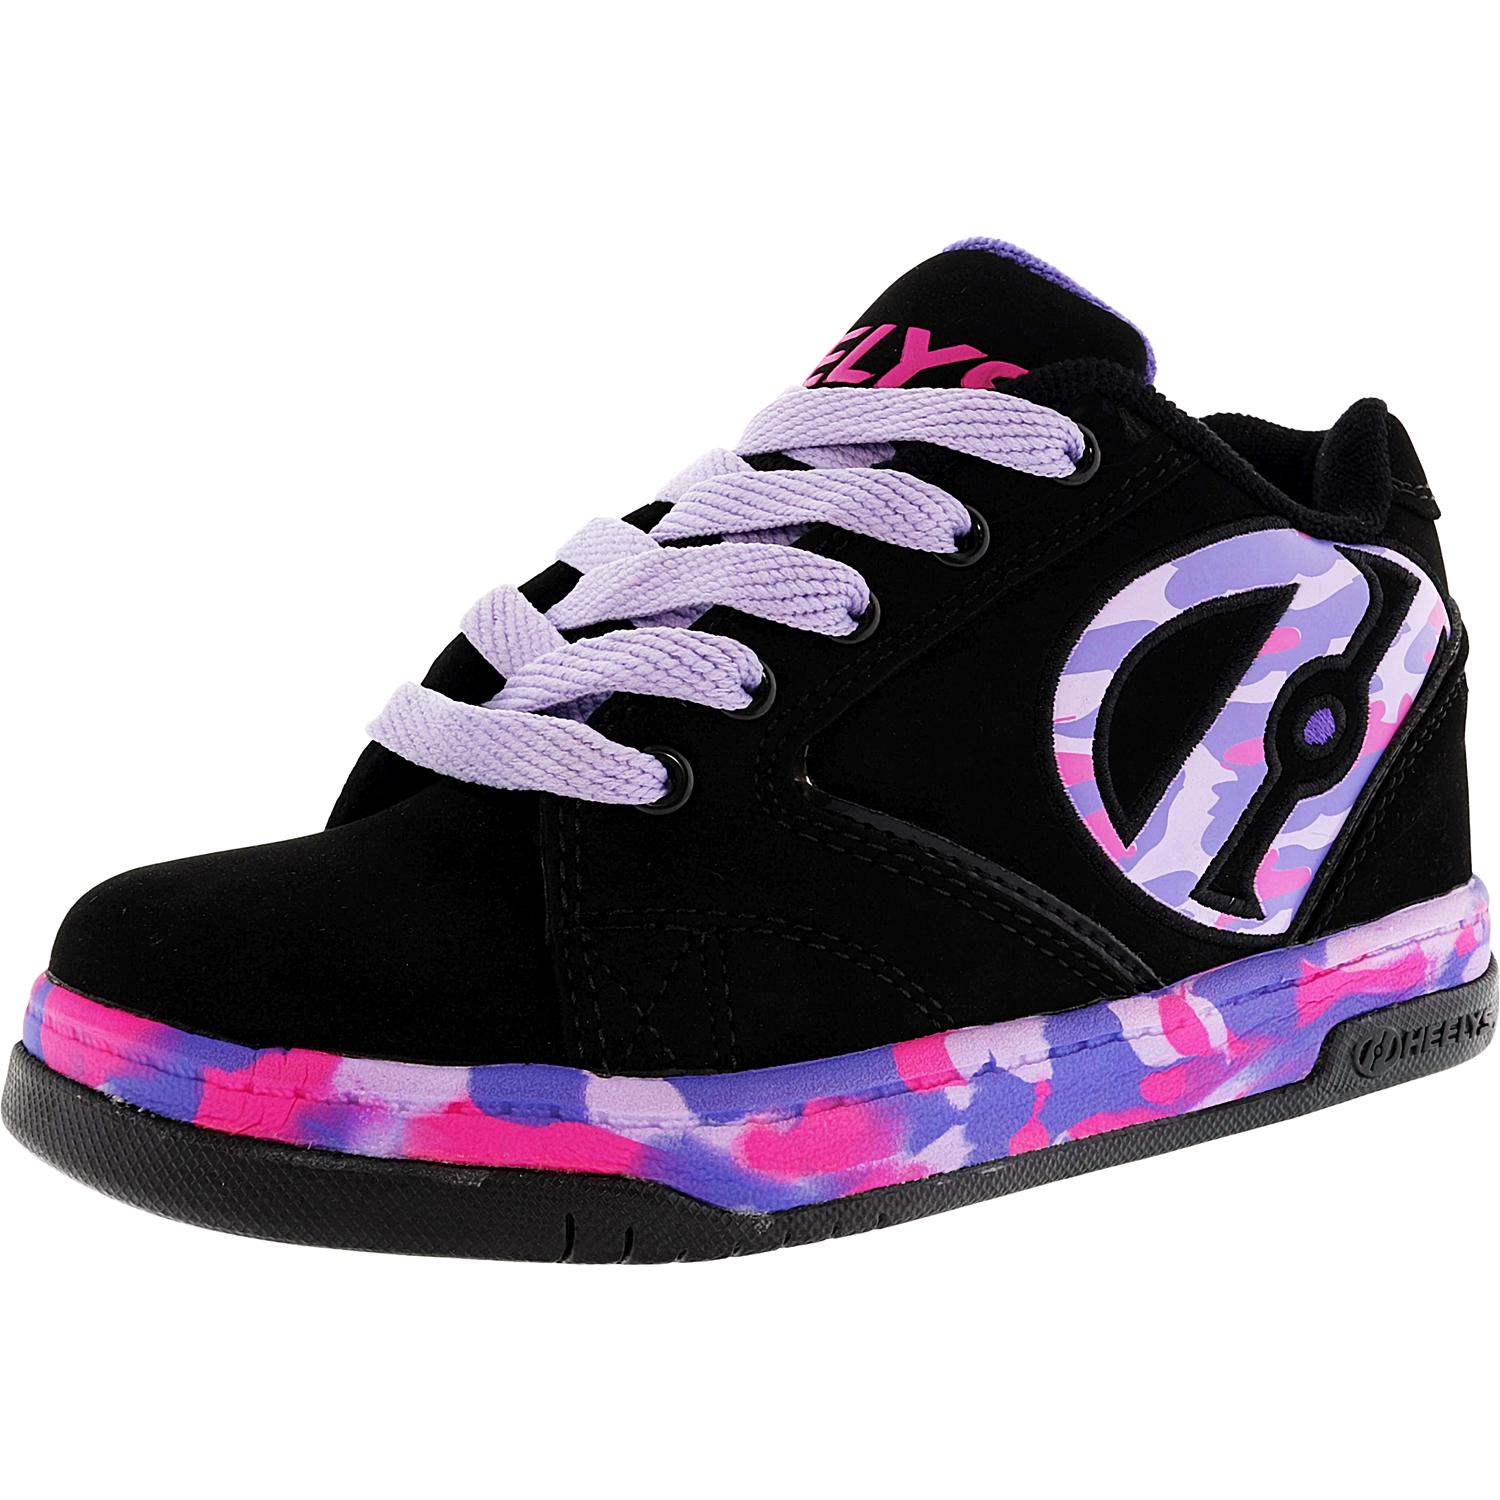 Heelys Propel 2.0 Black / Lilac Pink Confetti Ankle-High Skateboarding Shoe - 2M